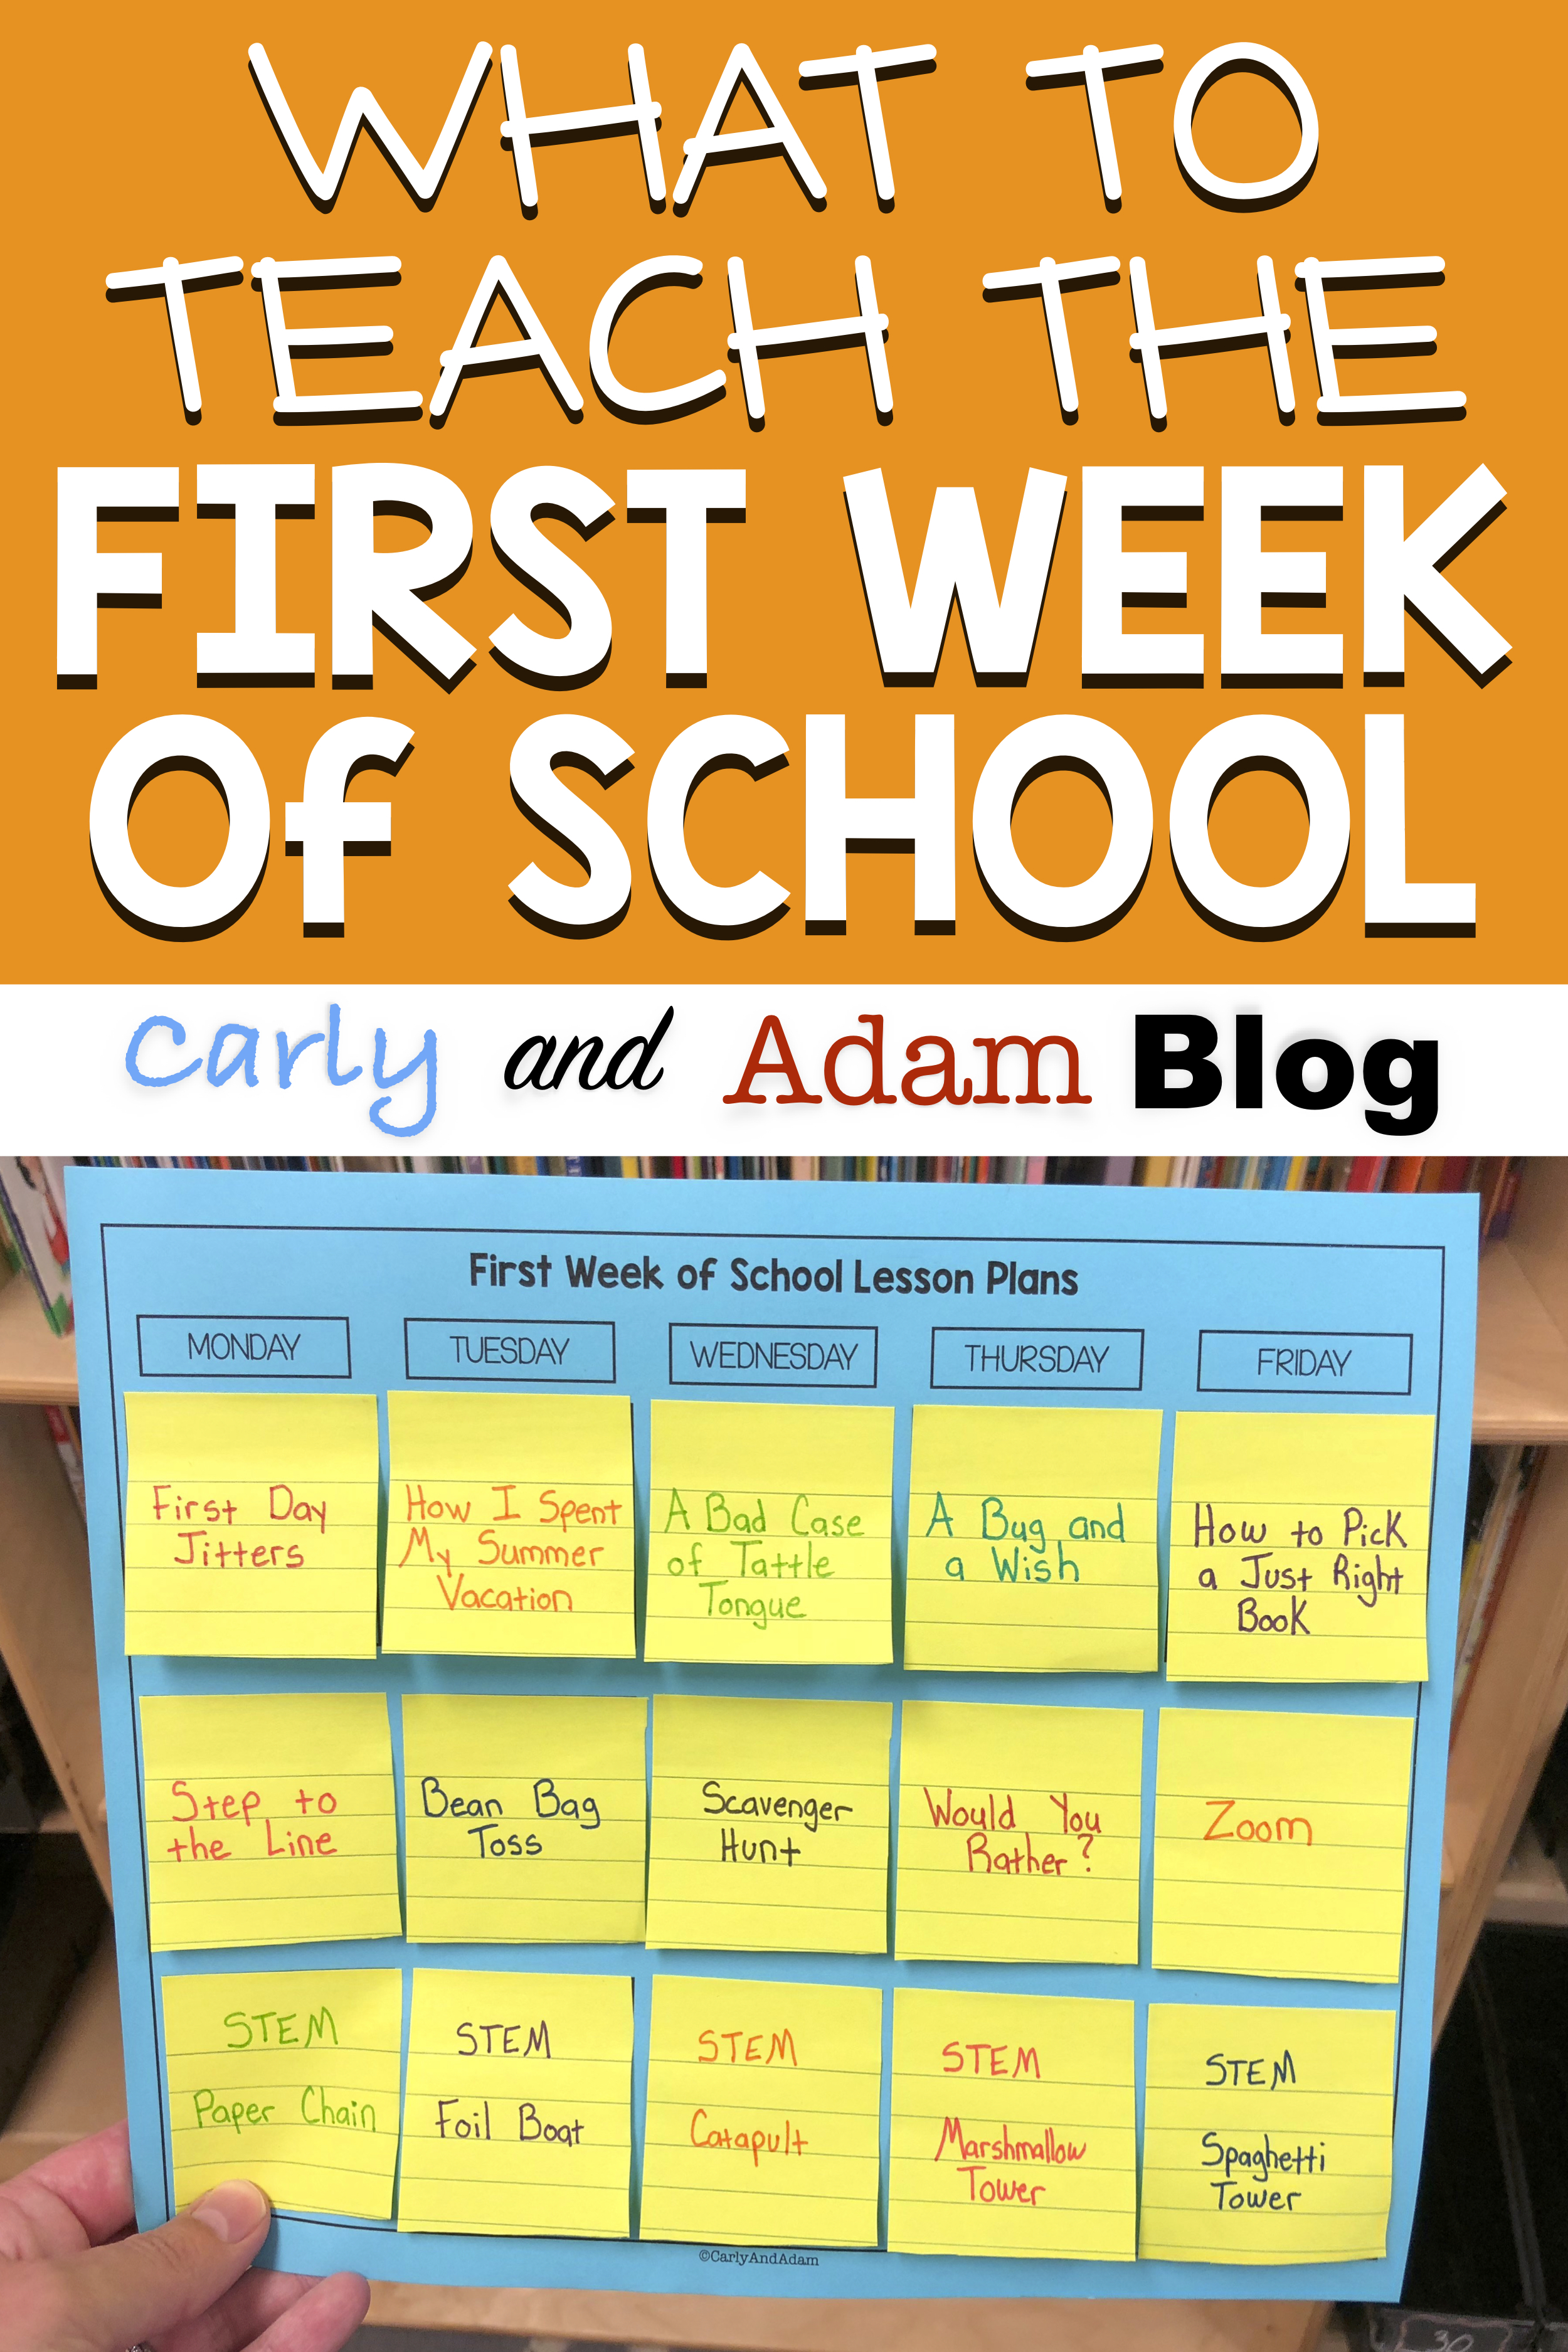 A Teachers Case Against Summer Vacation >> Carly And Adam Elementary Stem Teachers Blog Carly And Adam